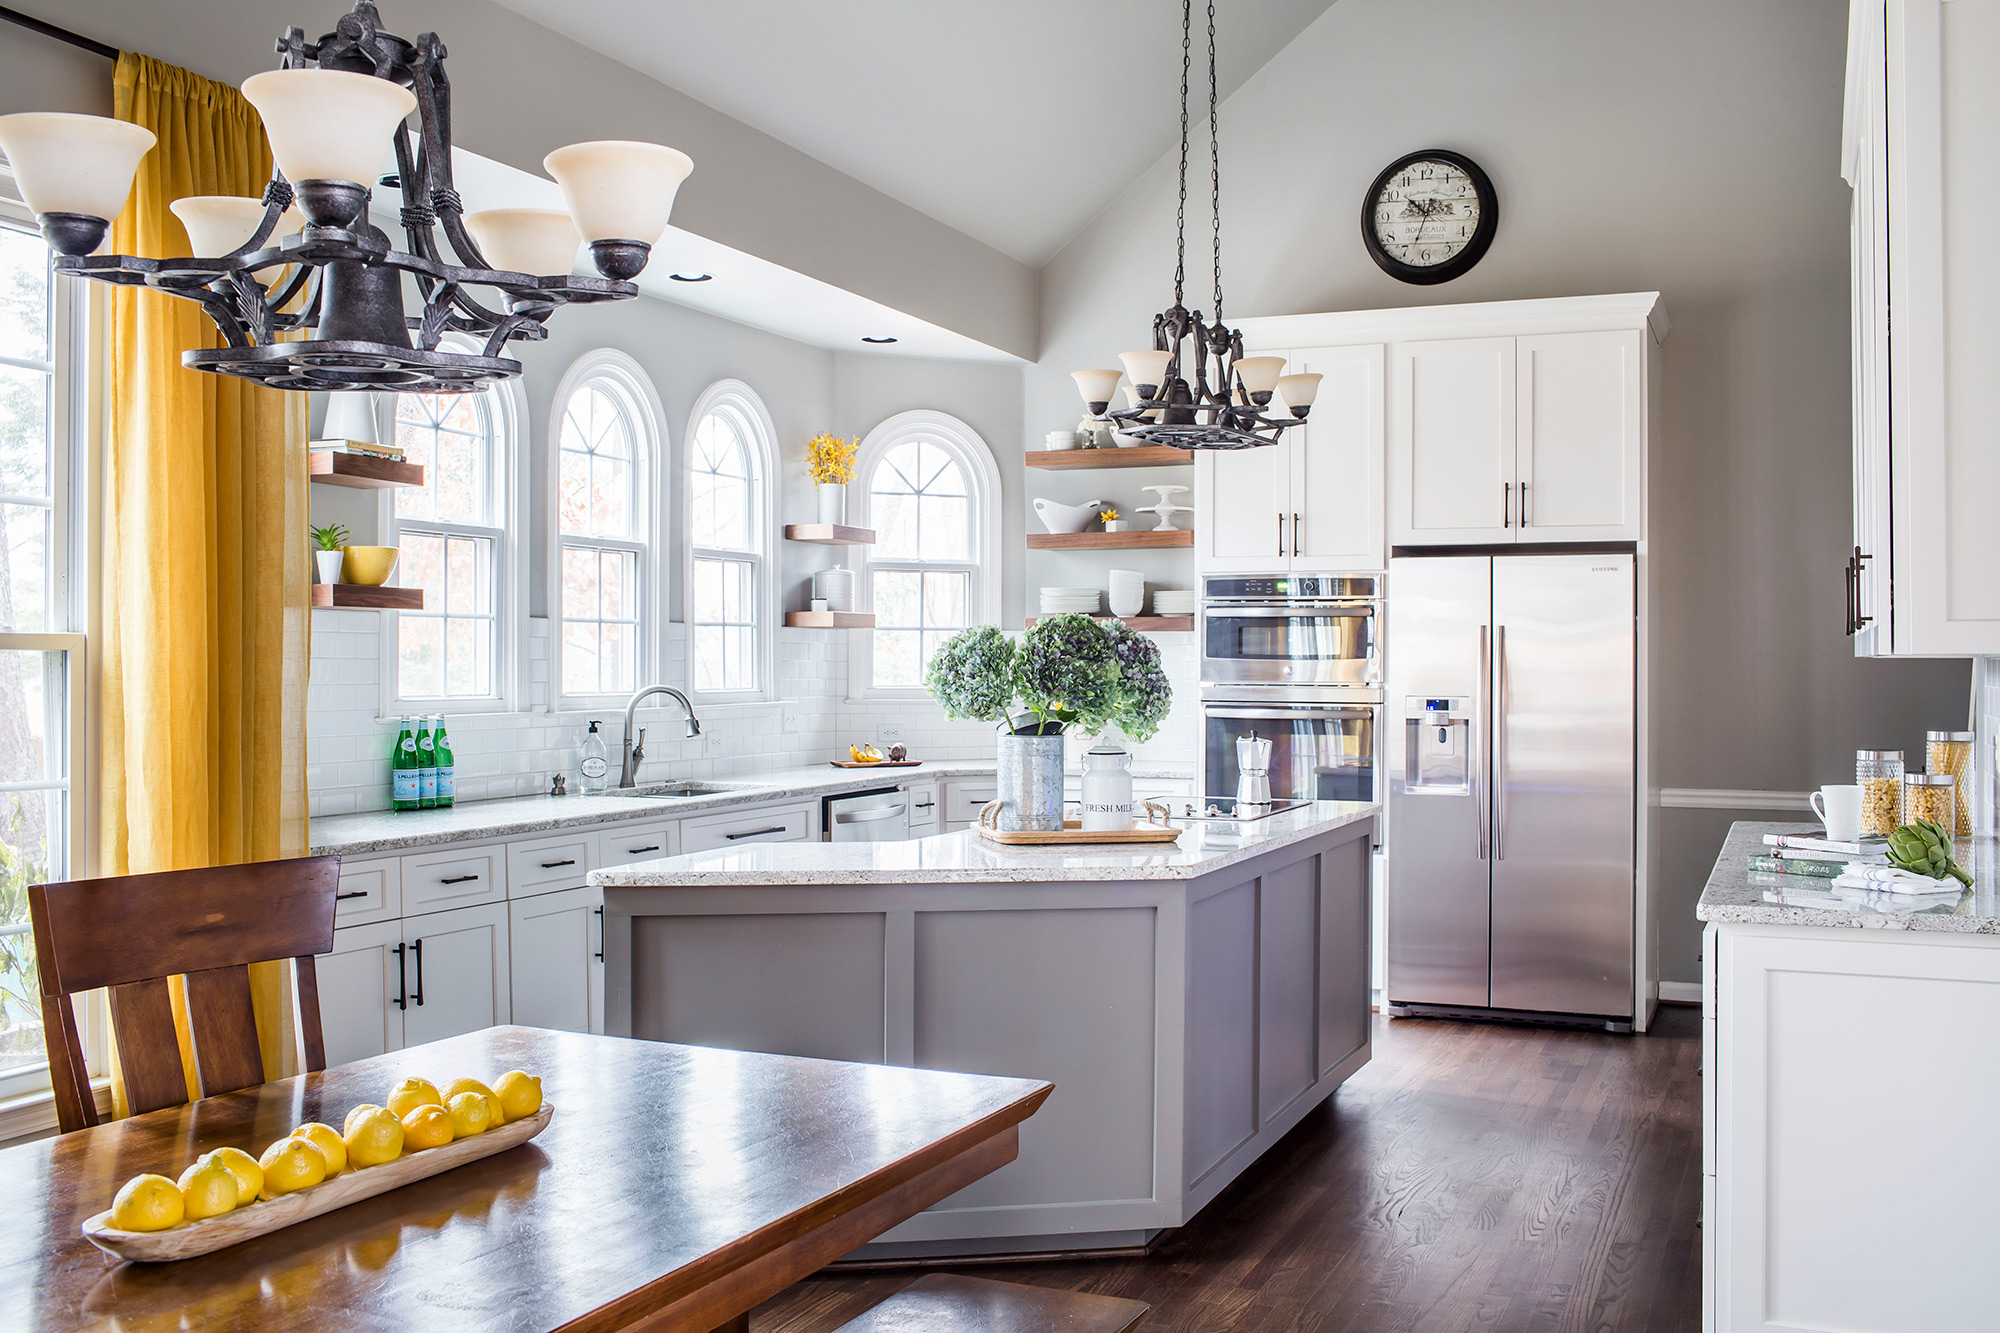 Transitional grey and yellow kitchen with stainless steel appliances